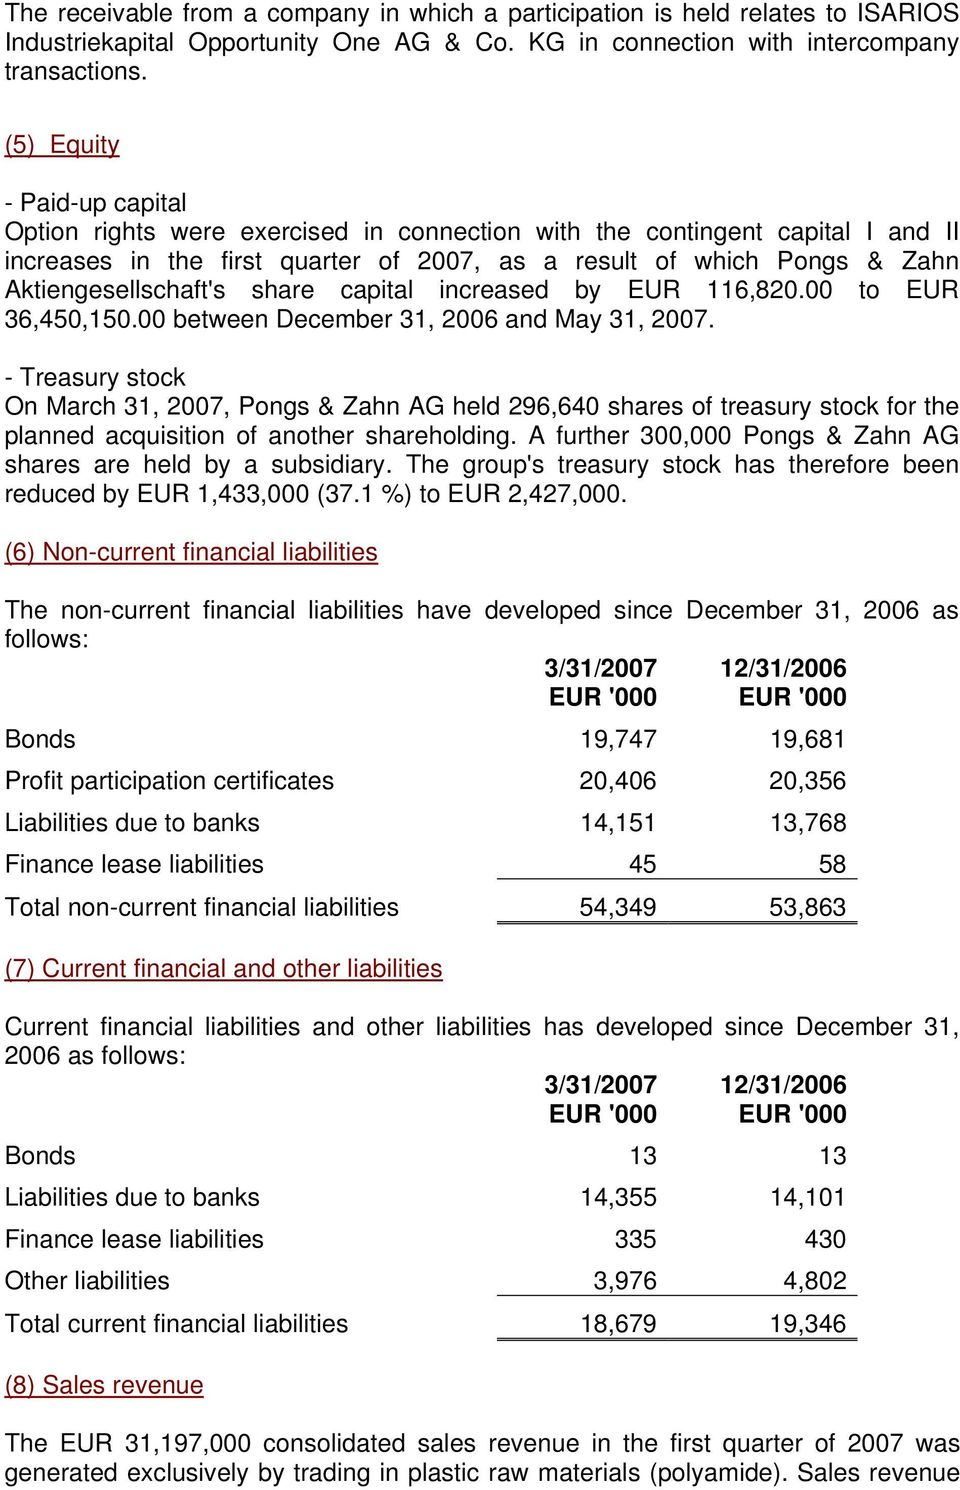 Aktiengesellschaft's share capital increased by EUR 116,820.00 to EUR 36,450,150.00 between December 31, 2006 and May 31, 2007.